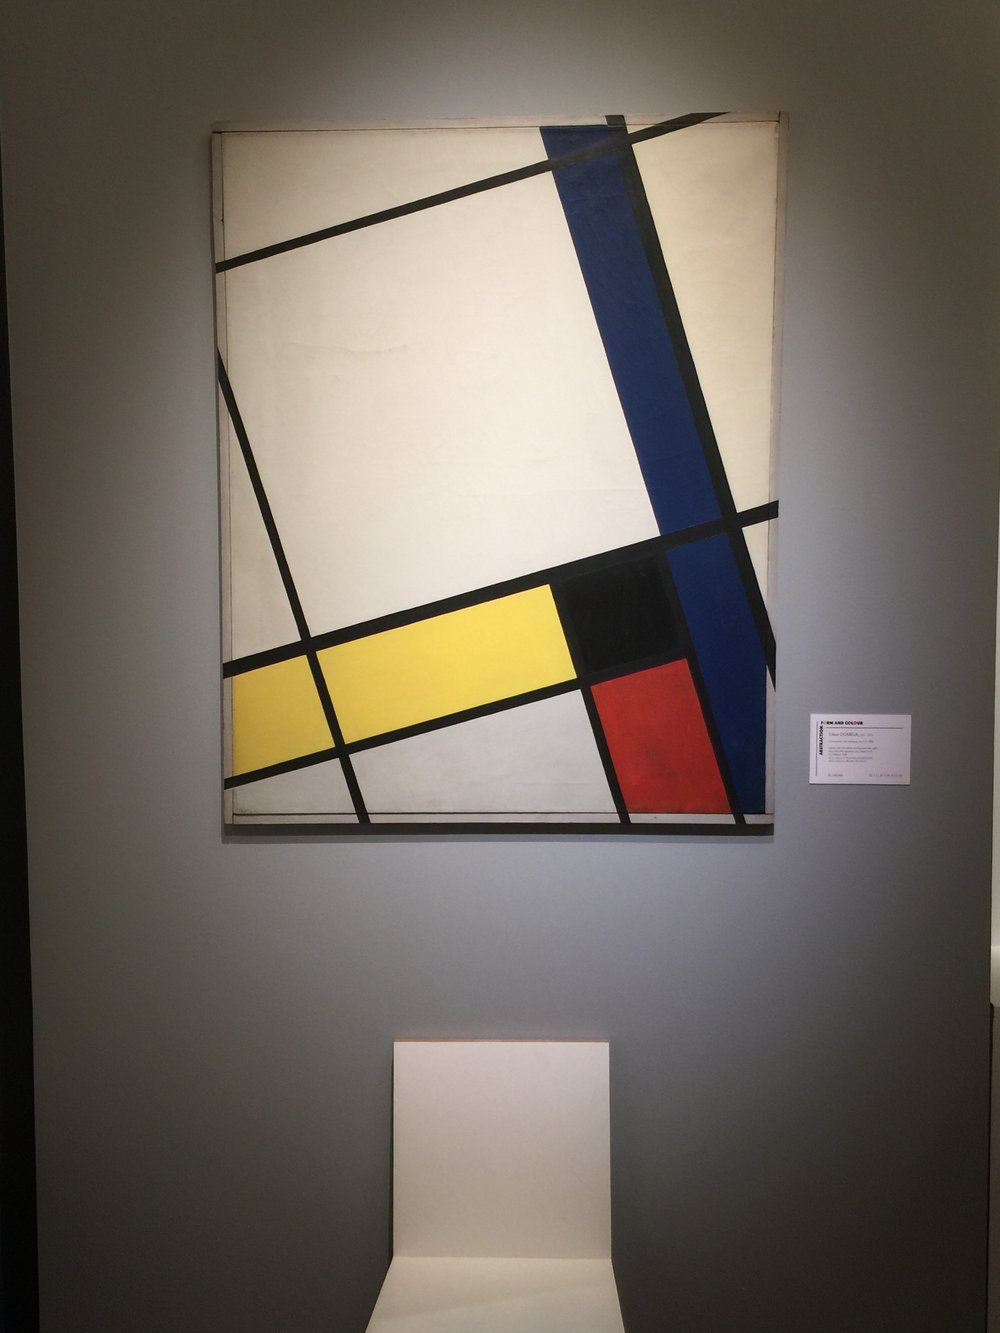 Cesar Domela, Composition neo-plastique no. 45, 1926, Exhibition by Dickinson Gallery